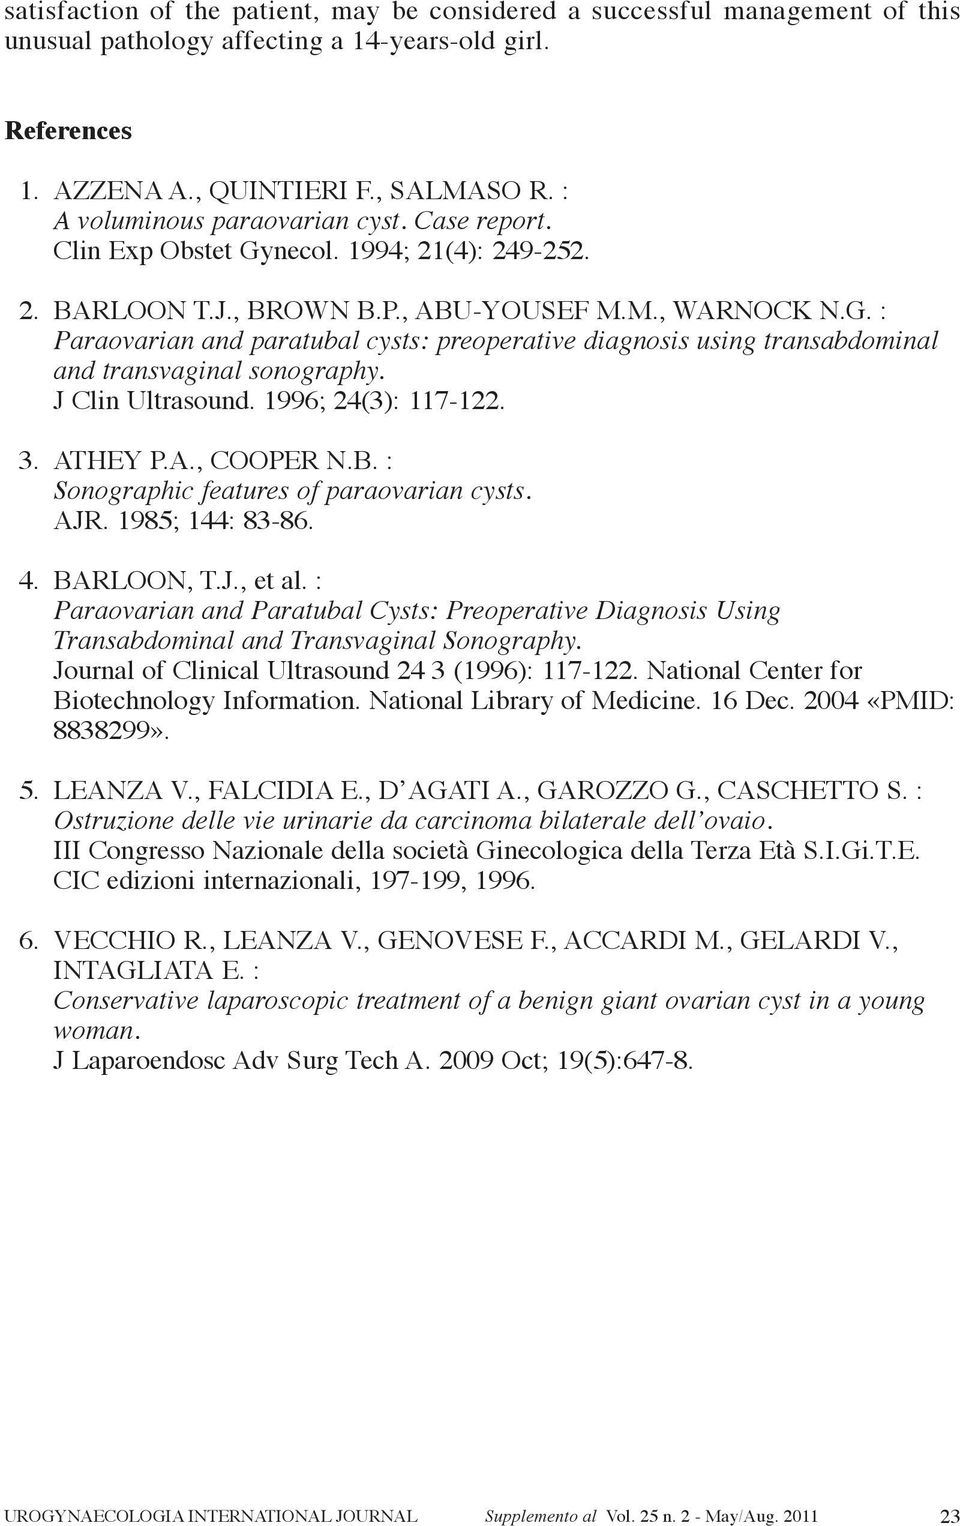 J clin Ultrasound. 1996; 24(3): 117-122. 3. athey P.a., cooper n.b. : Sonographic features of paraovarian cysts. ajr. 1985; 144: 83-86. 4. Barloon, t.j., et al.